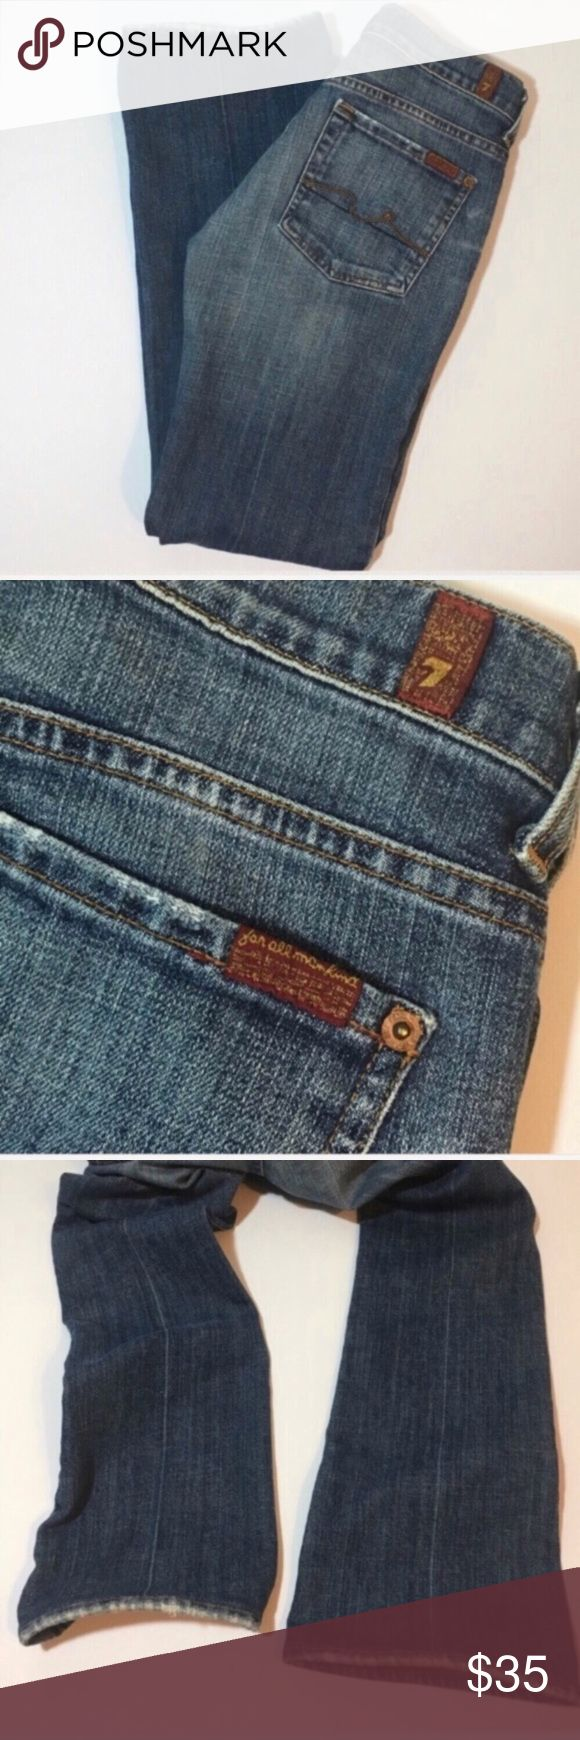 """7 for all Mankind boycut mini bootcut jeans Boy cut style mini boot jeans with button fly by 7 For All Man Kind. Inseam approx 28"""", rise approx 7.5"""" listed under petite because the inseam is short. 7 For All Mankind Jeans Boot Cut"""